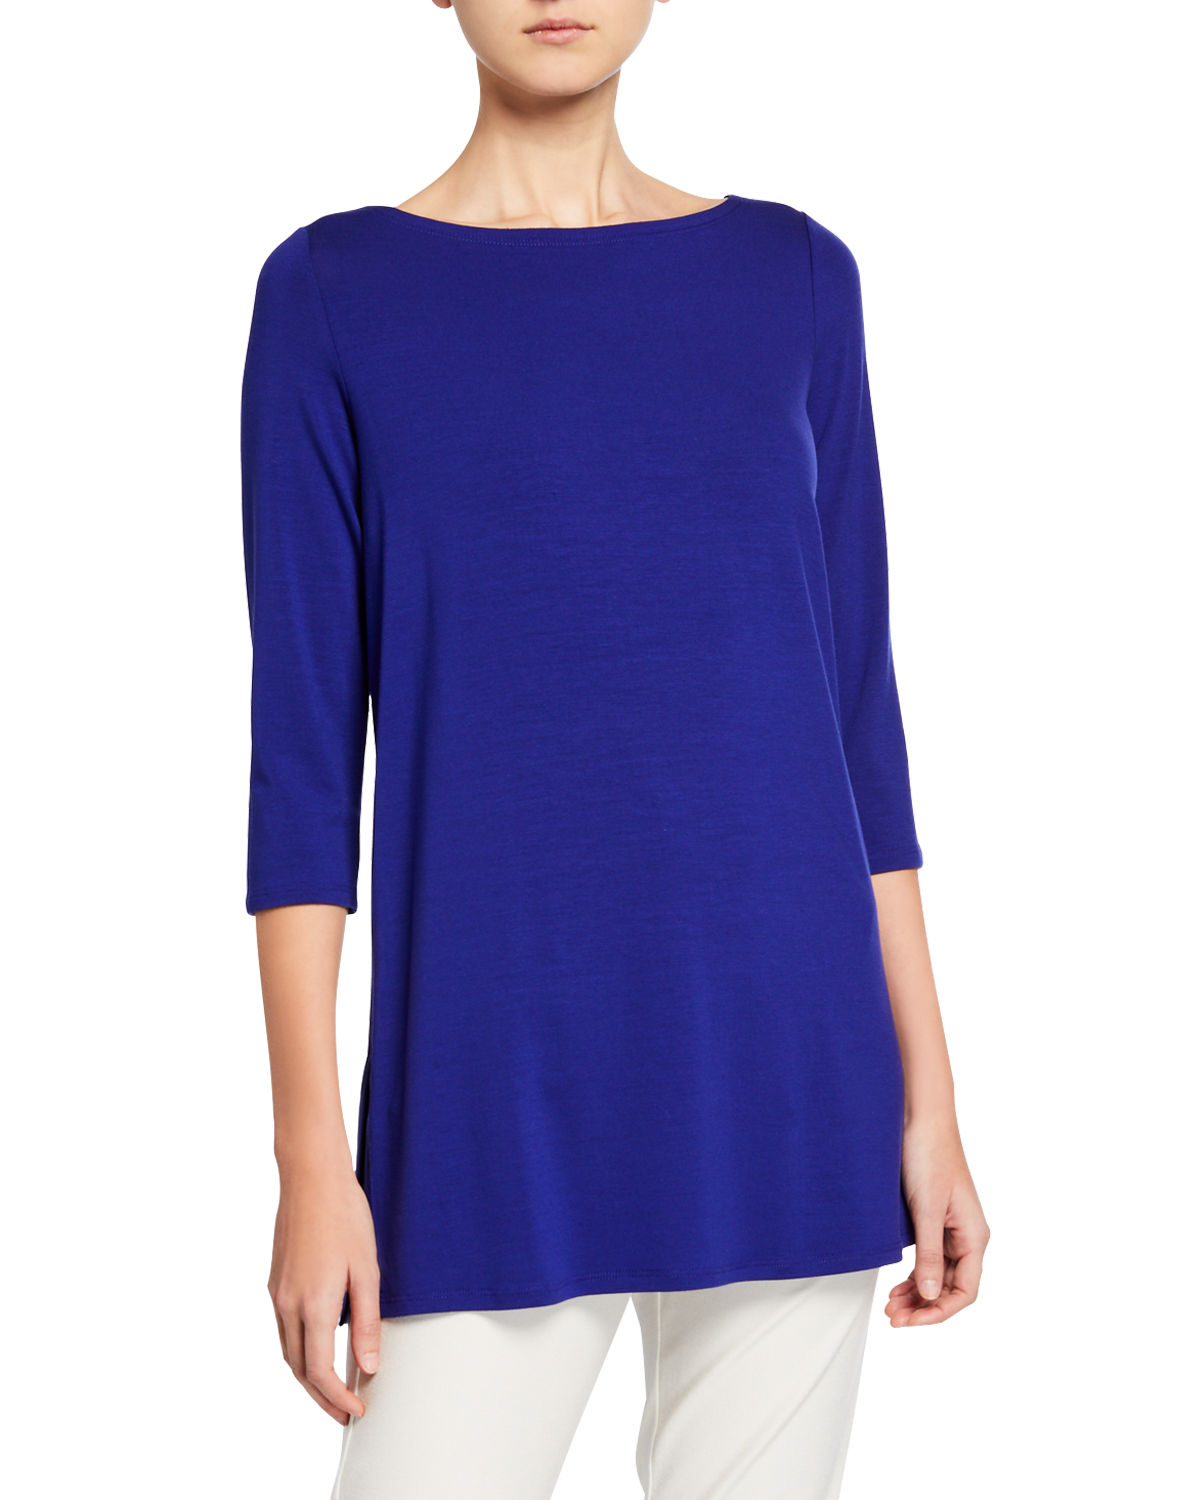 Eileen Fisher Tops PETITE BOAT-NECK 3/4-SLEEVE JERSEY TUNIC